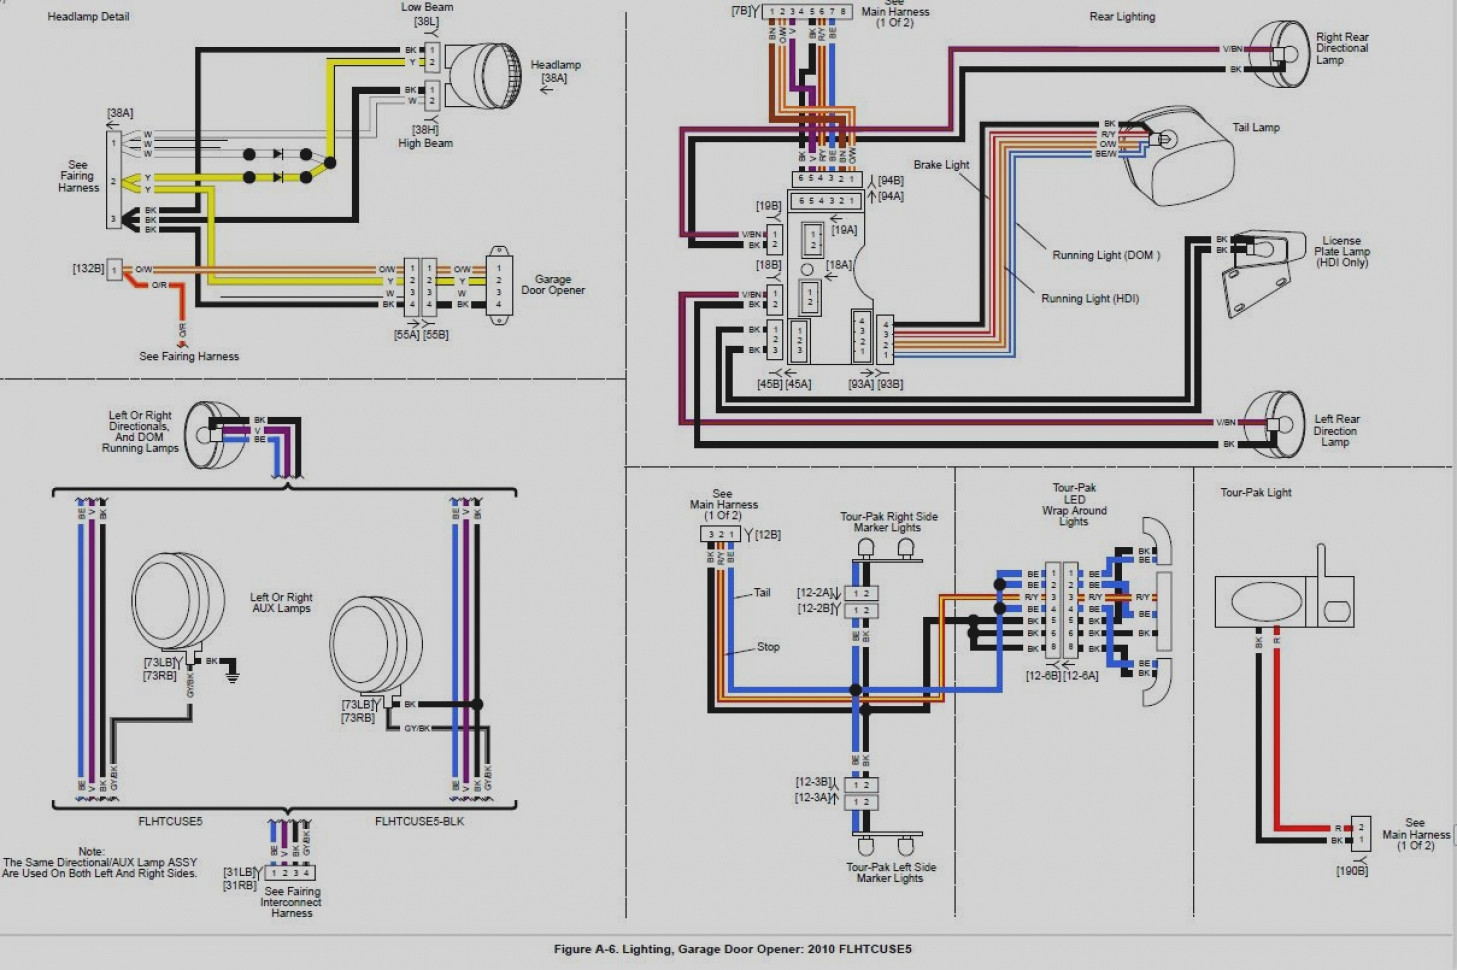 chamberlain garage door sensor wiring diagram | free ... liftmaster garage door opener wiring schematic